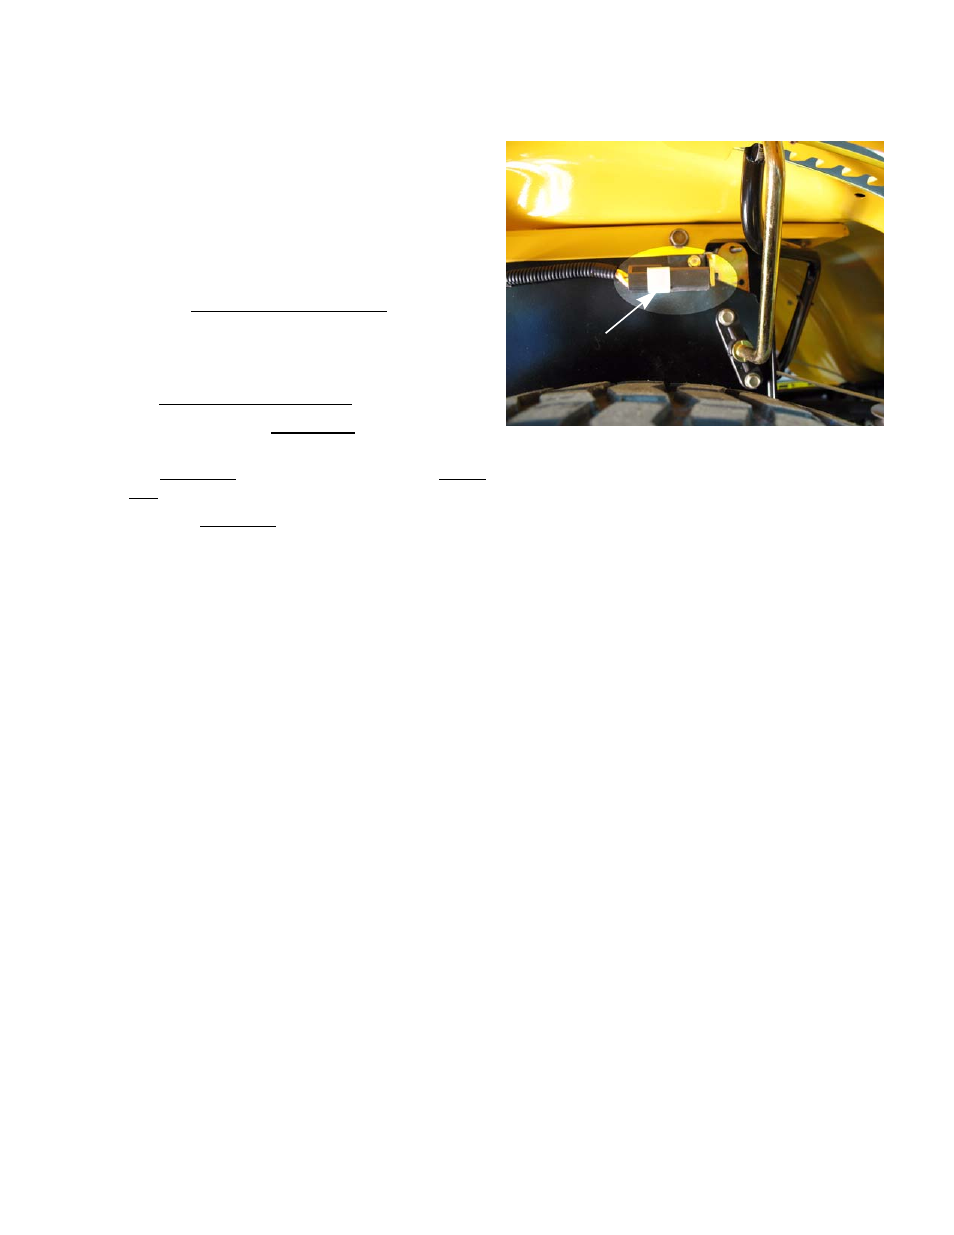 Pto switch (manual pto) | Cub Cadet SLTX1000 Series User Manual | Page 157  / 278